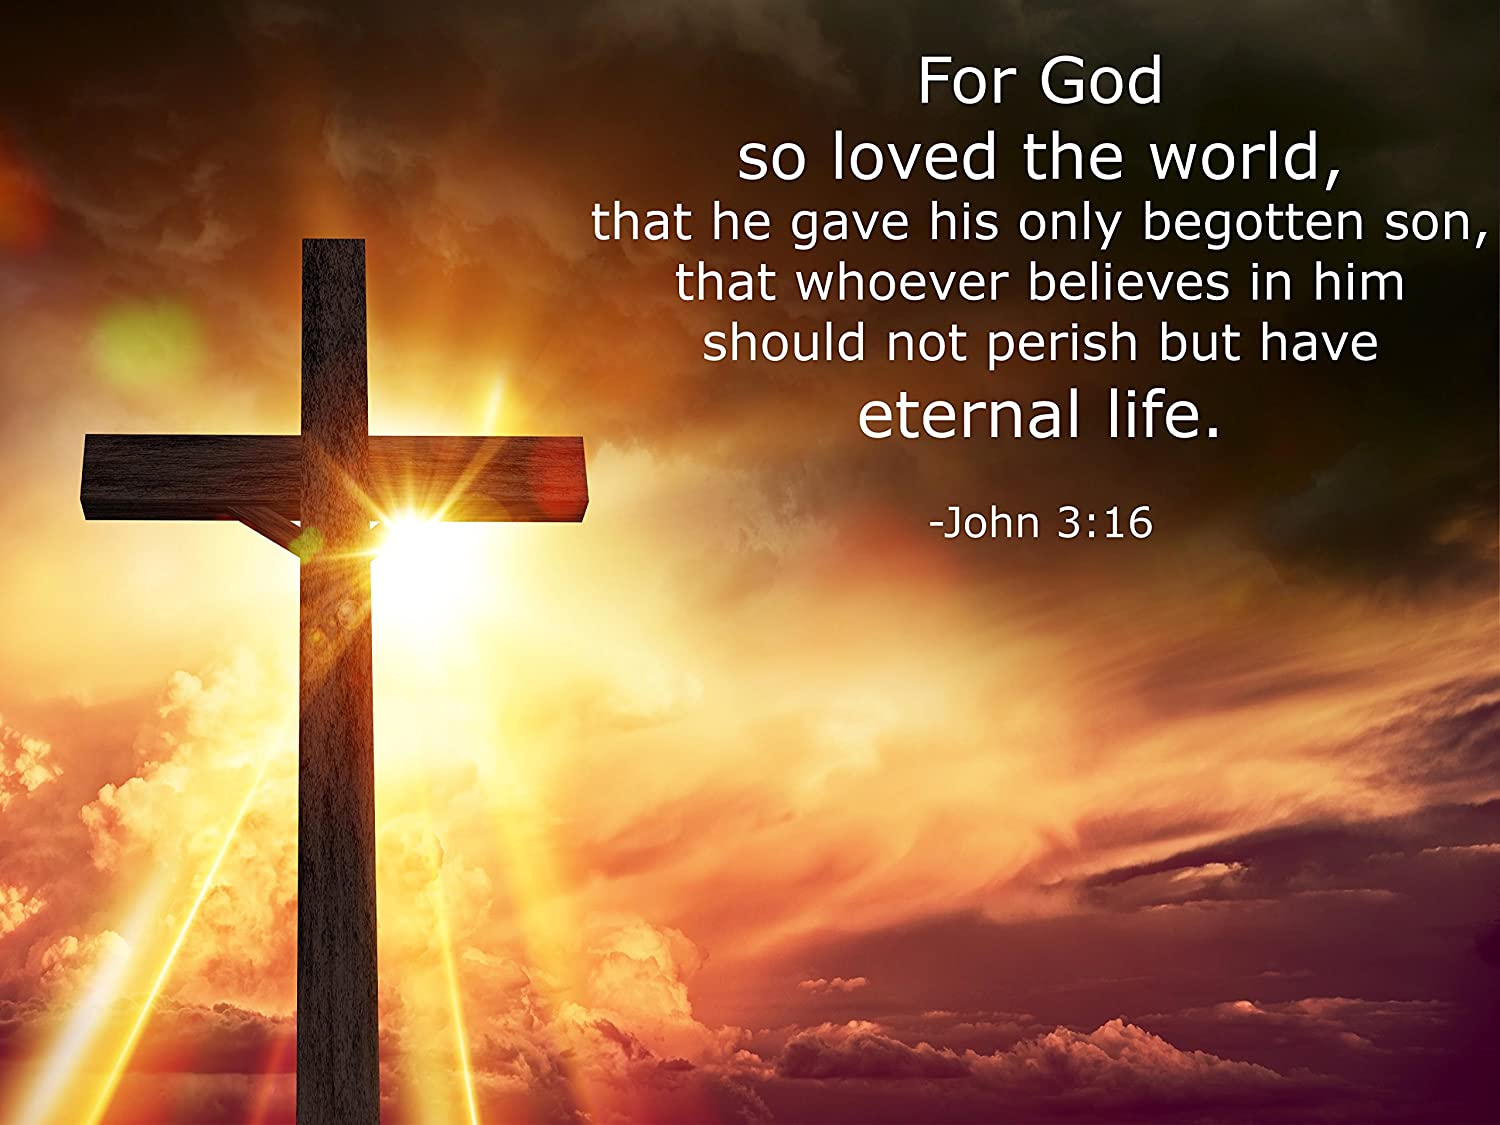 Amazon.com: John 3:16 Religious Poster - Inspirational Motivational ...